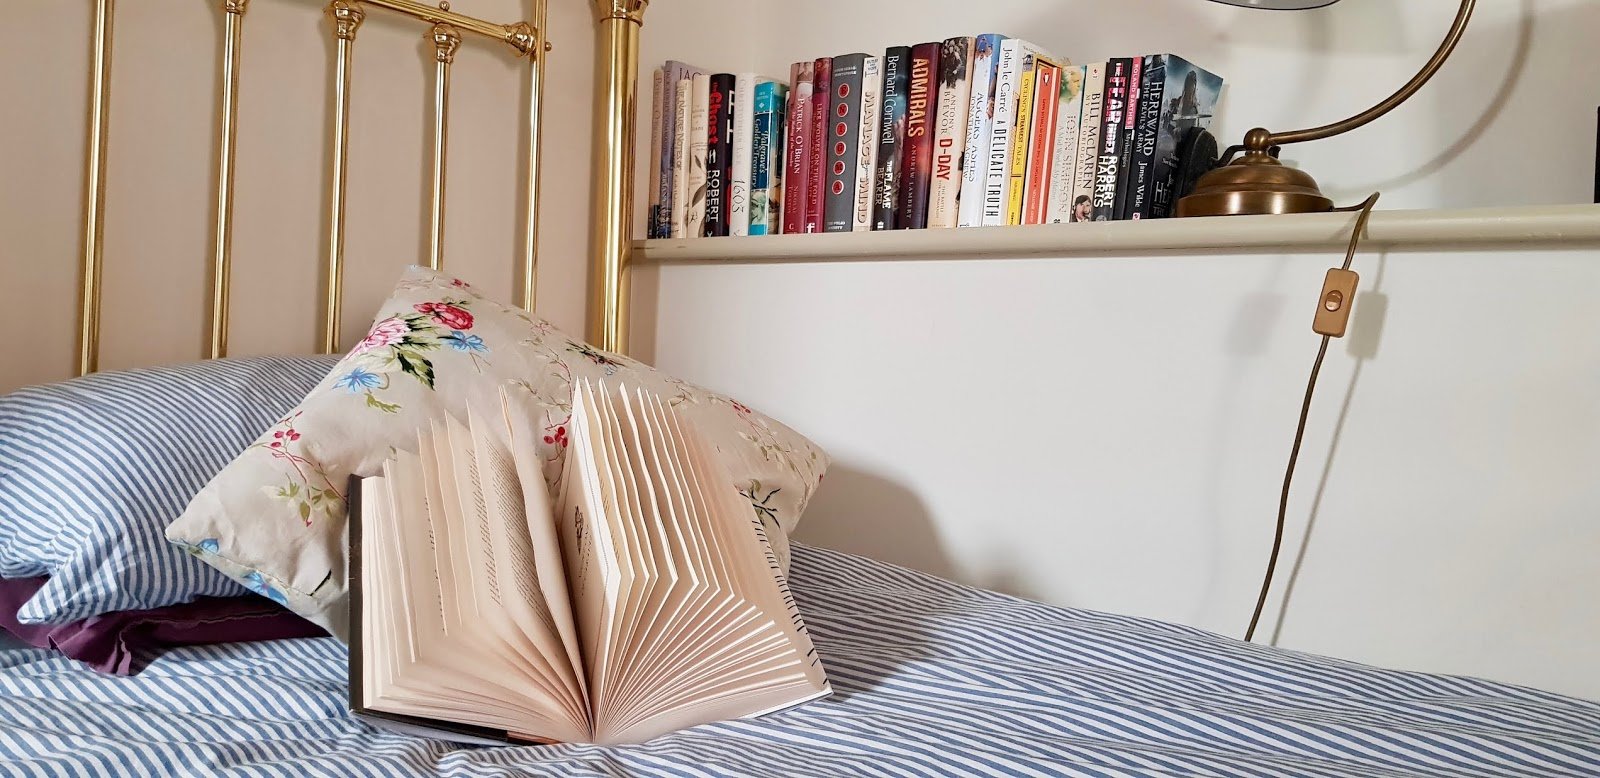 n open book rests on a pillow on a bed with a blue stripe duvet cover, with a shelf of books in the background